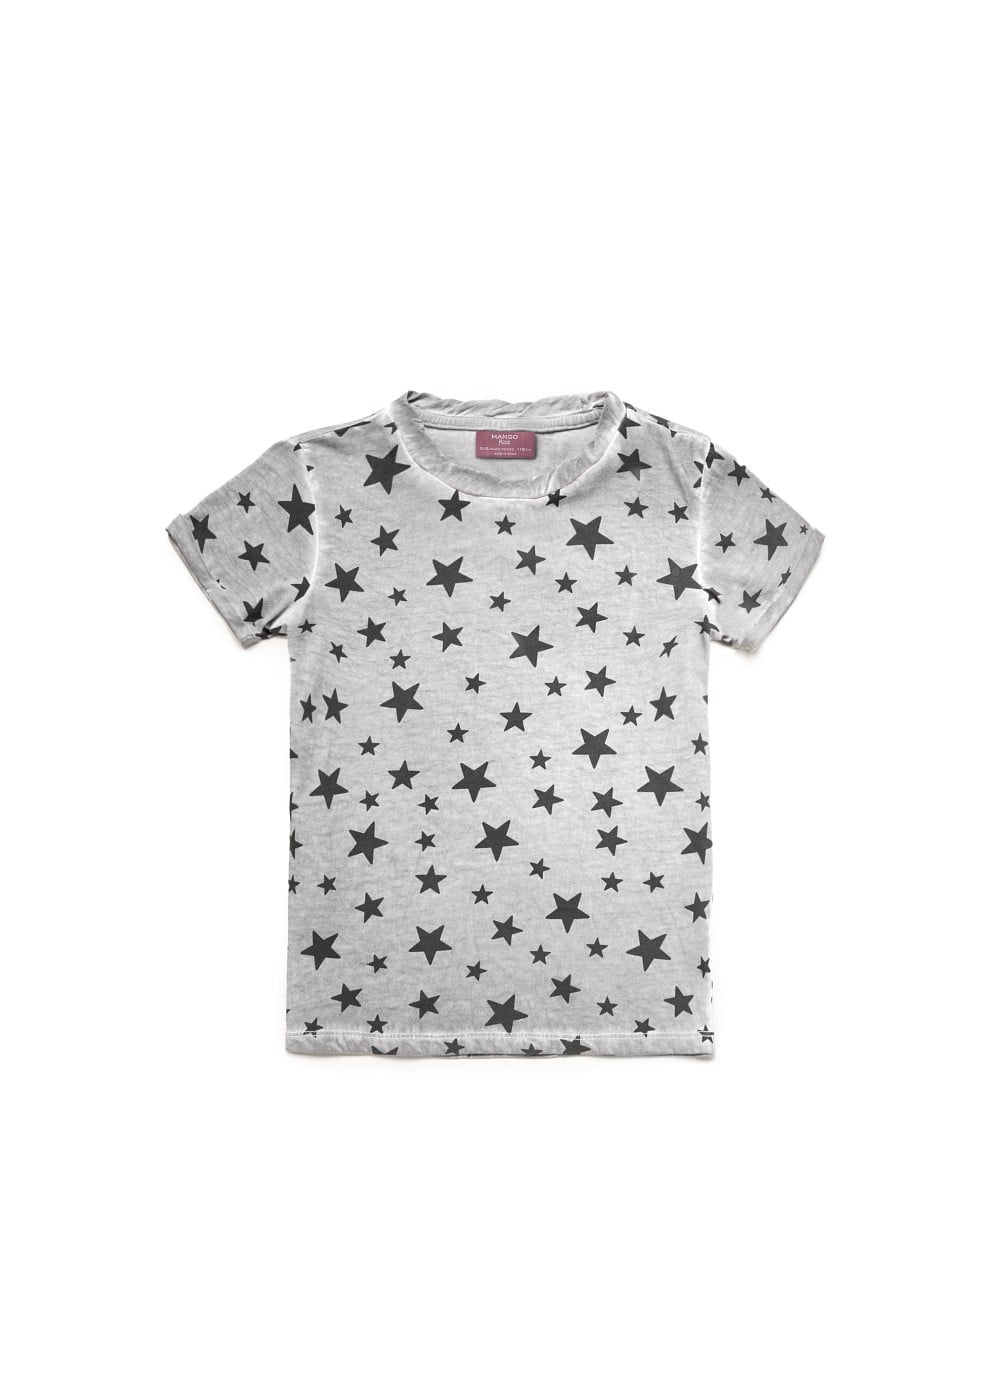 WASHED EFFECT STARS PRINT T-SHIRT